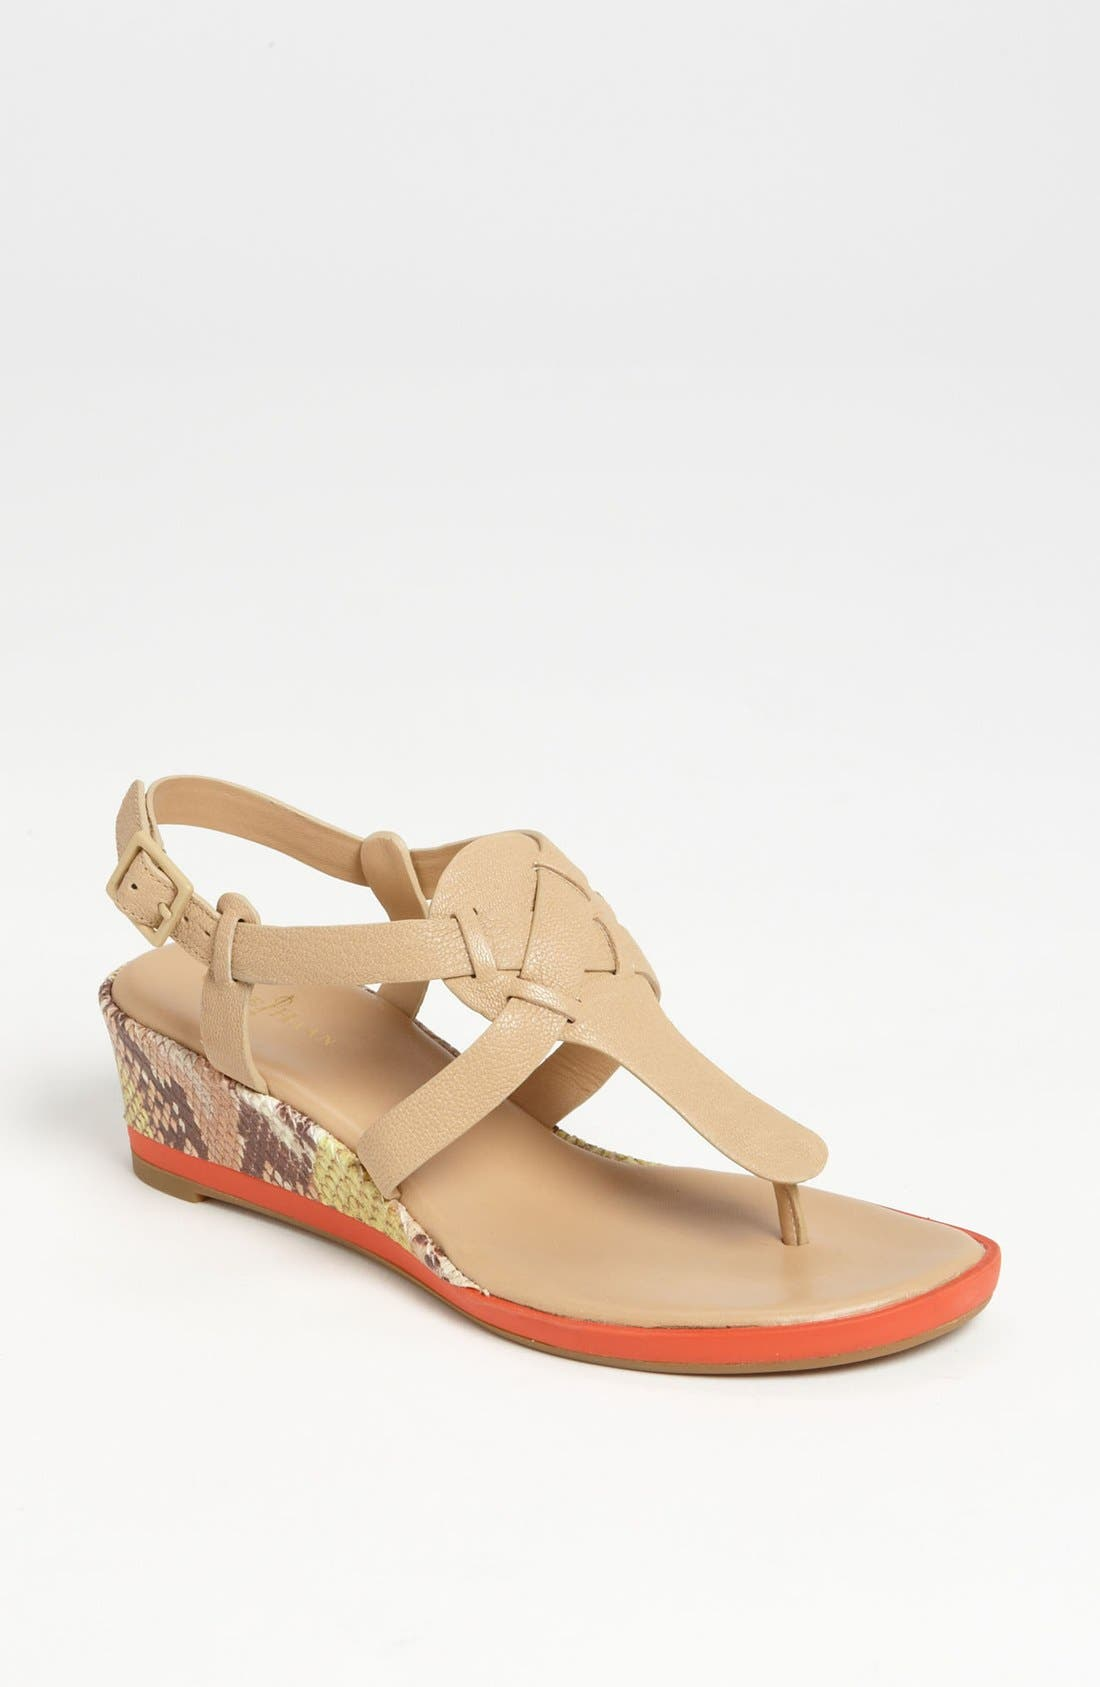 Alternate Image 1 Selected - Cole Haan 'Paley' Wedge